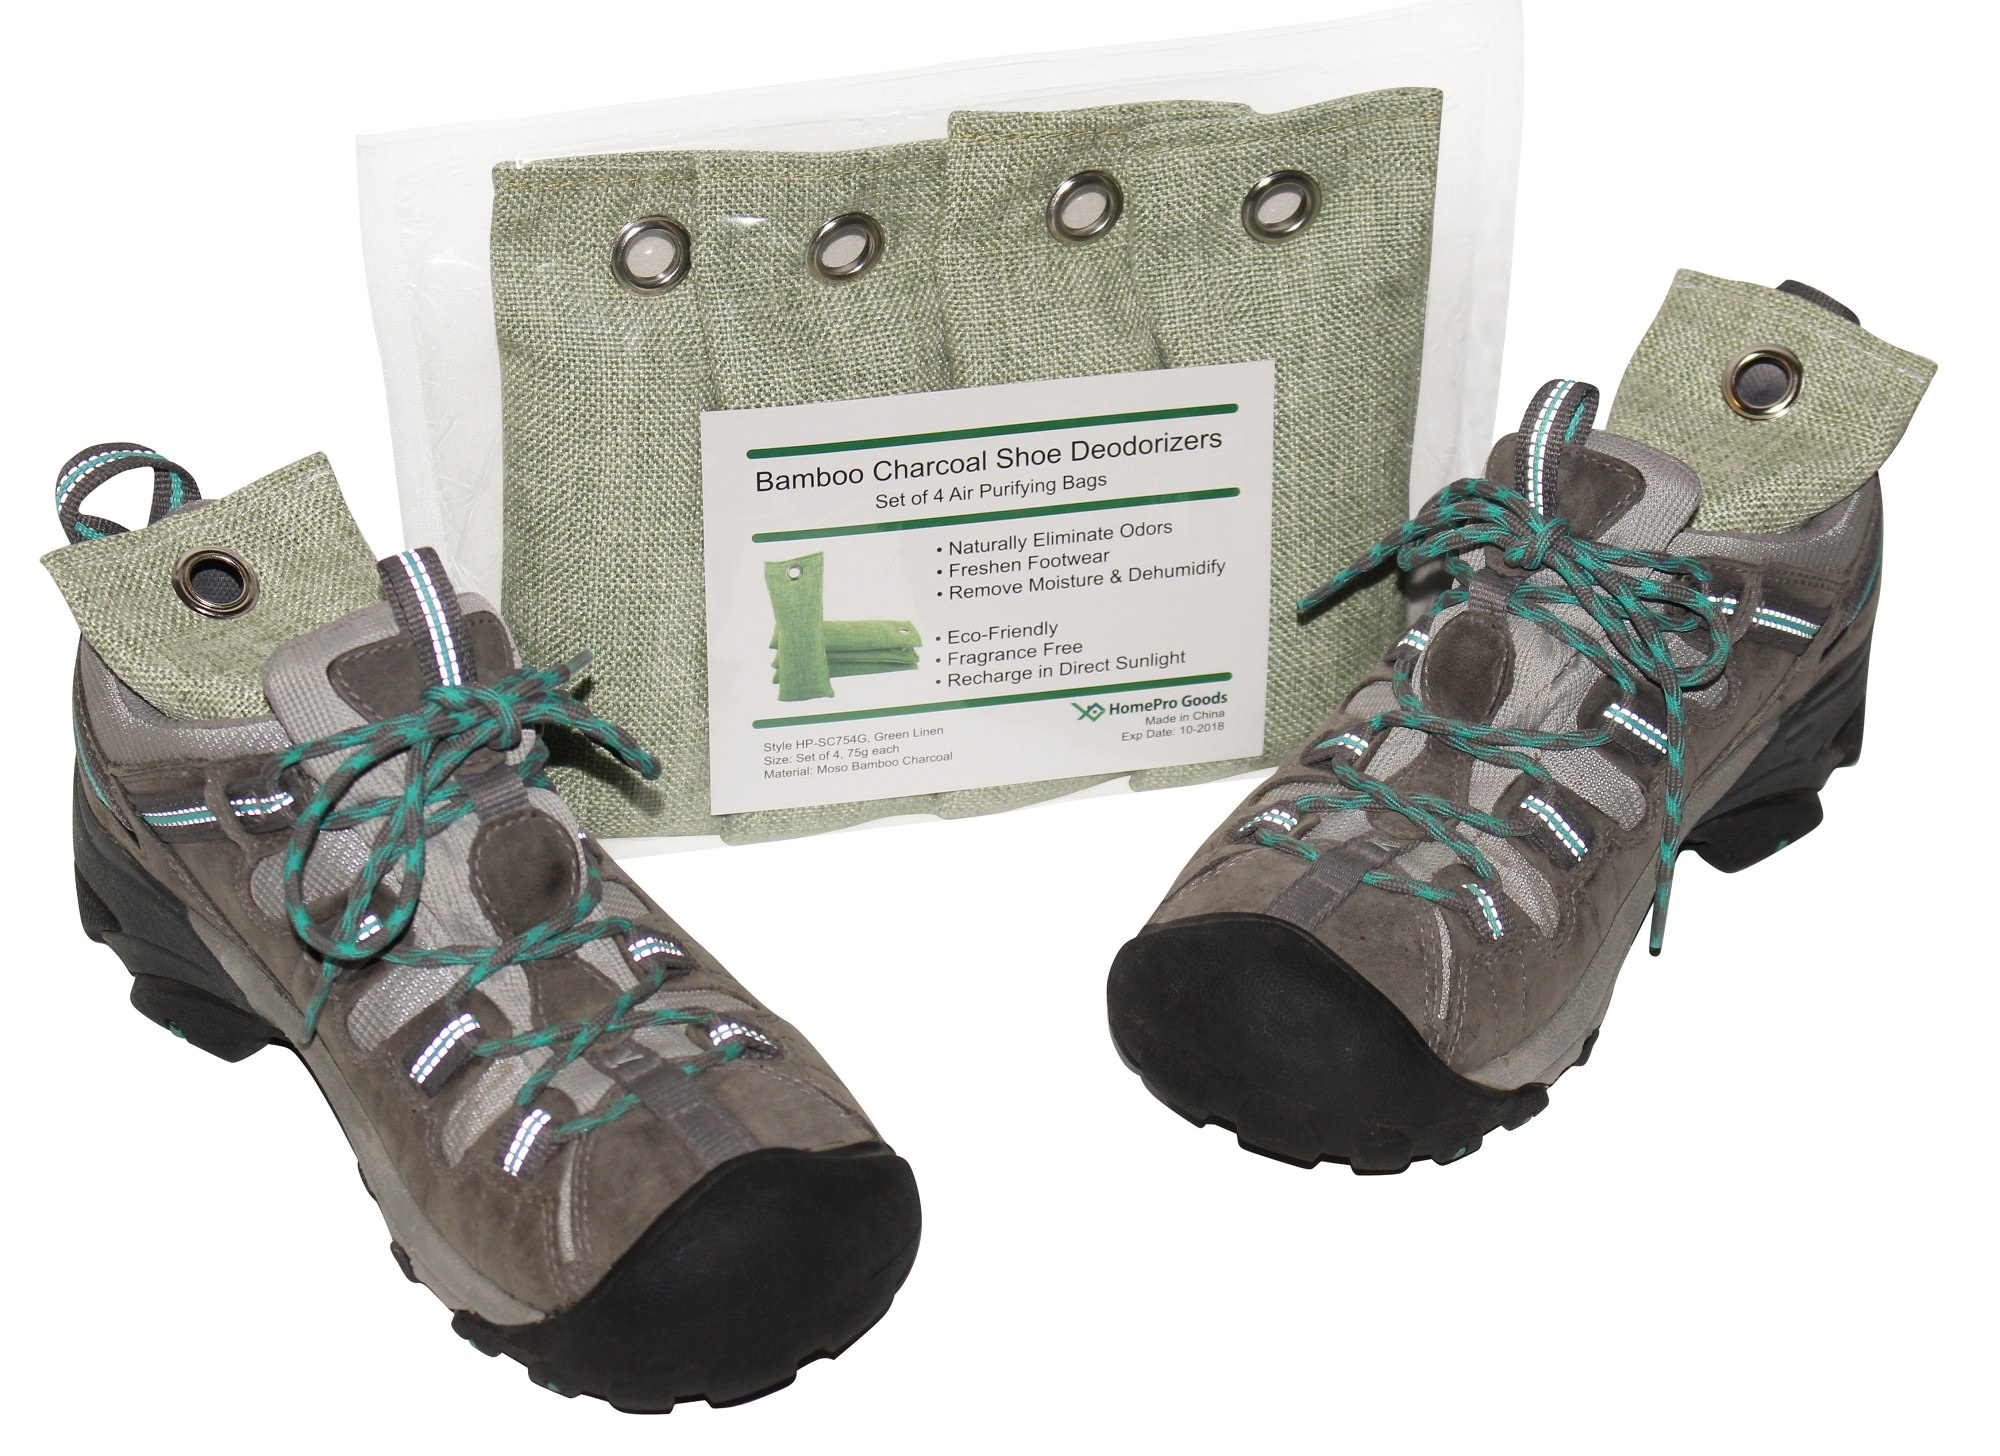 Product shown in package and inside a pair of hiking shoes